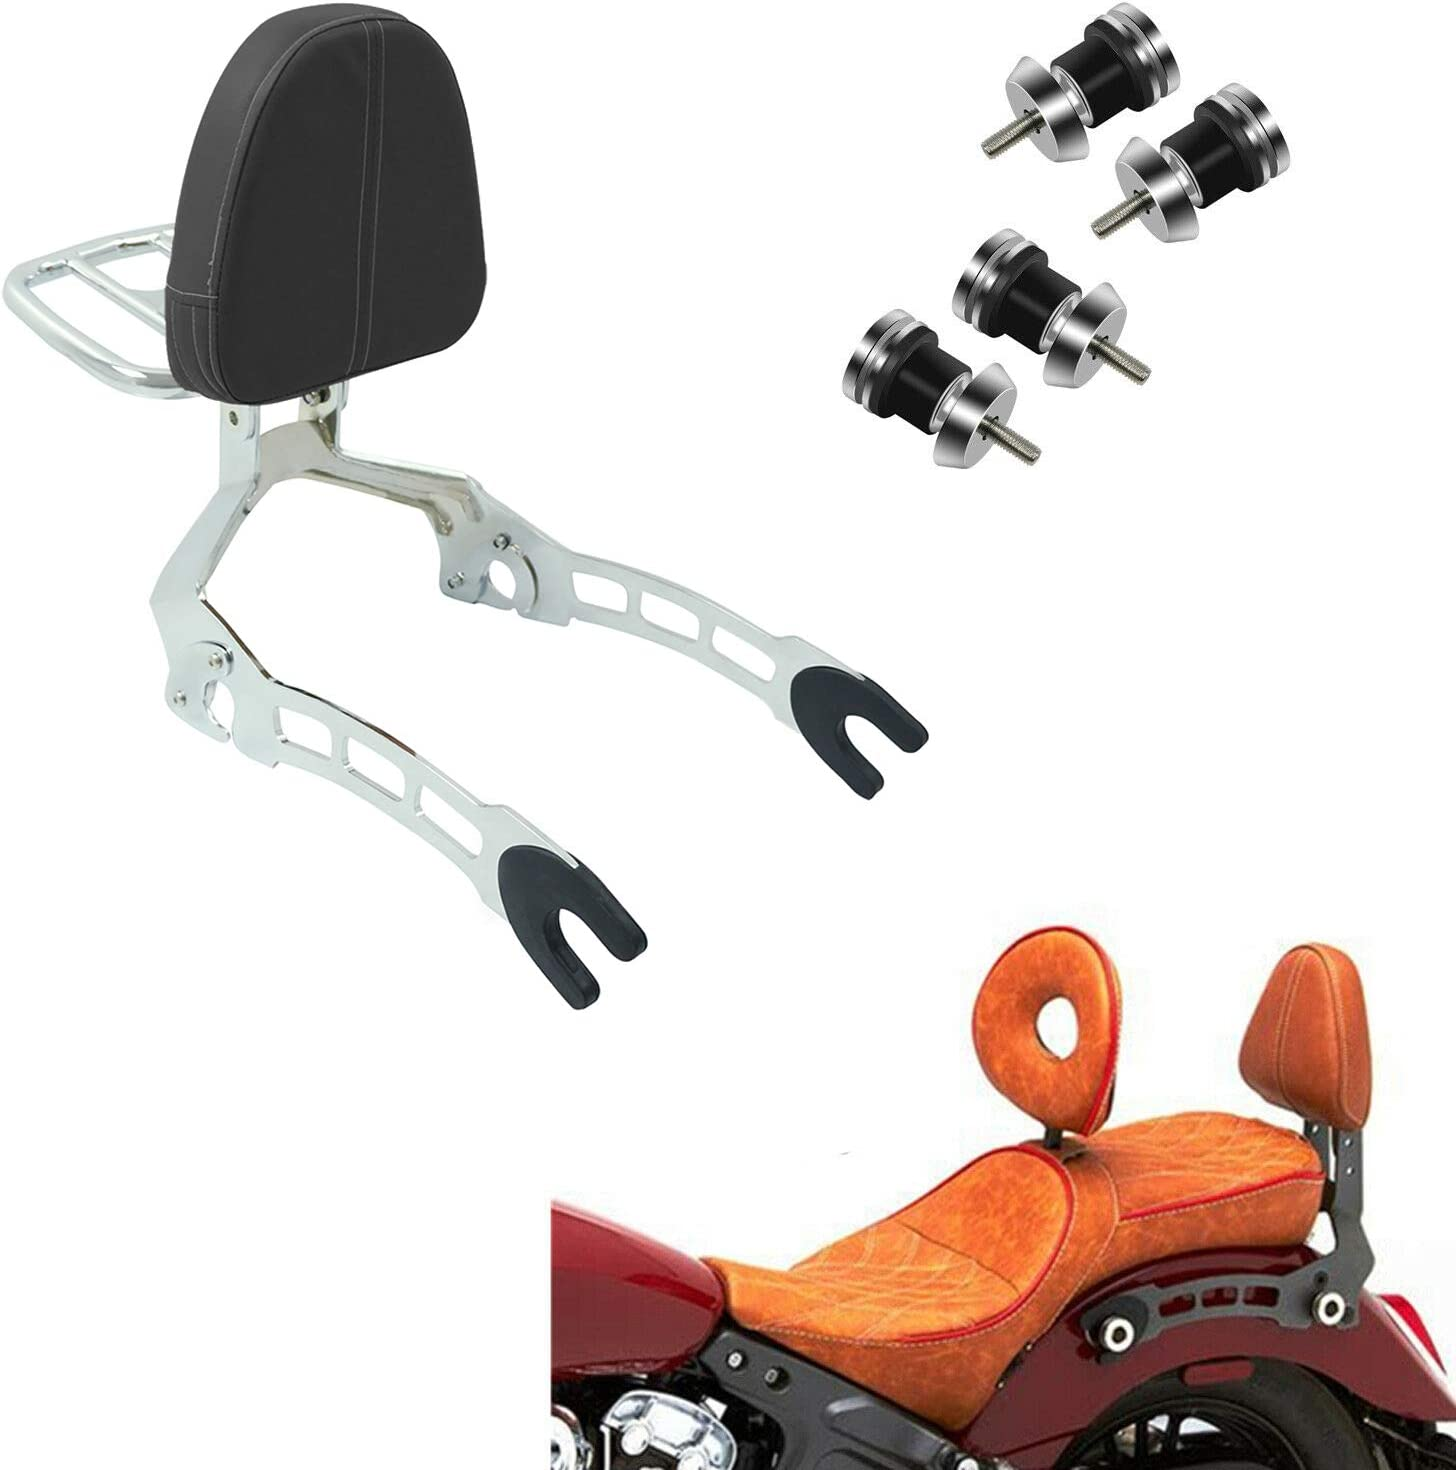 CPART Detachable Backrest Sissy Bar with Luggage Rack and 4 Mounting Spools For Indian Scout Sixty 2015-2019